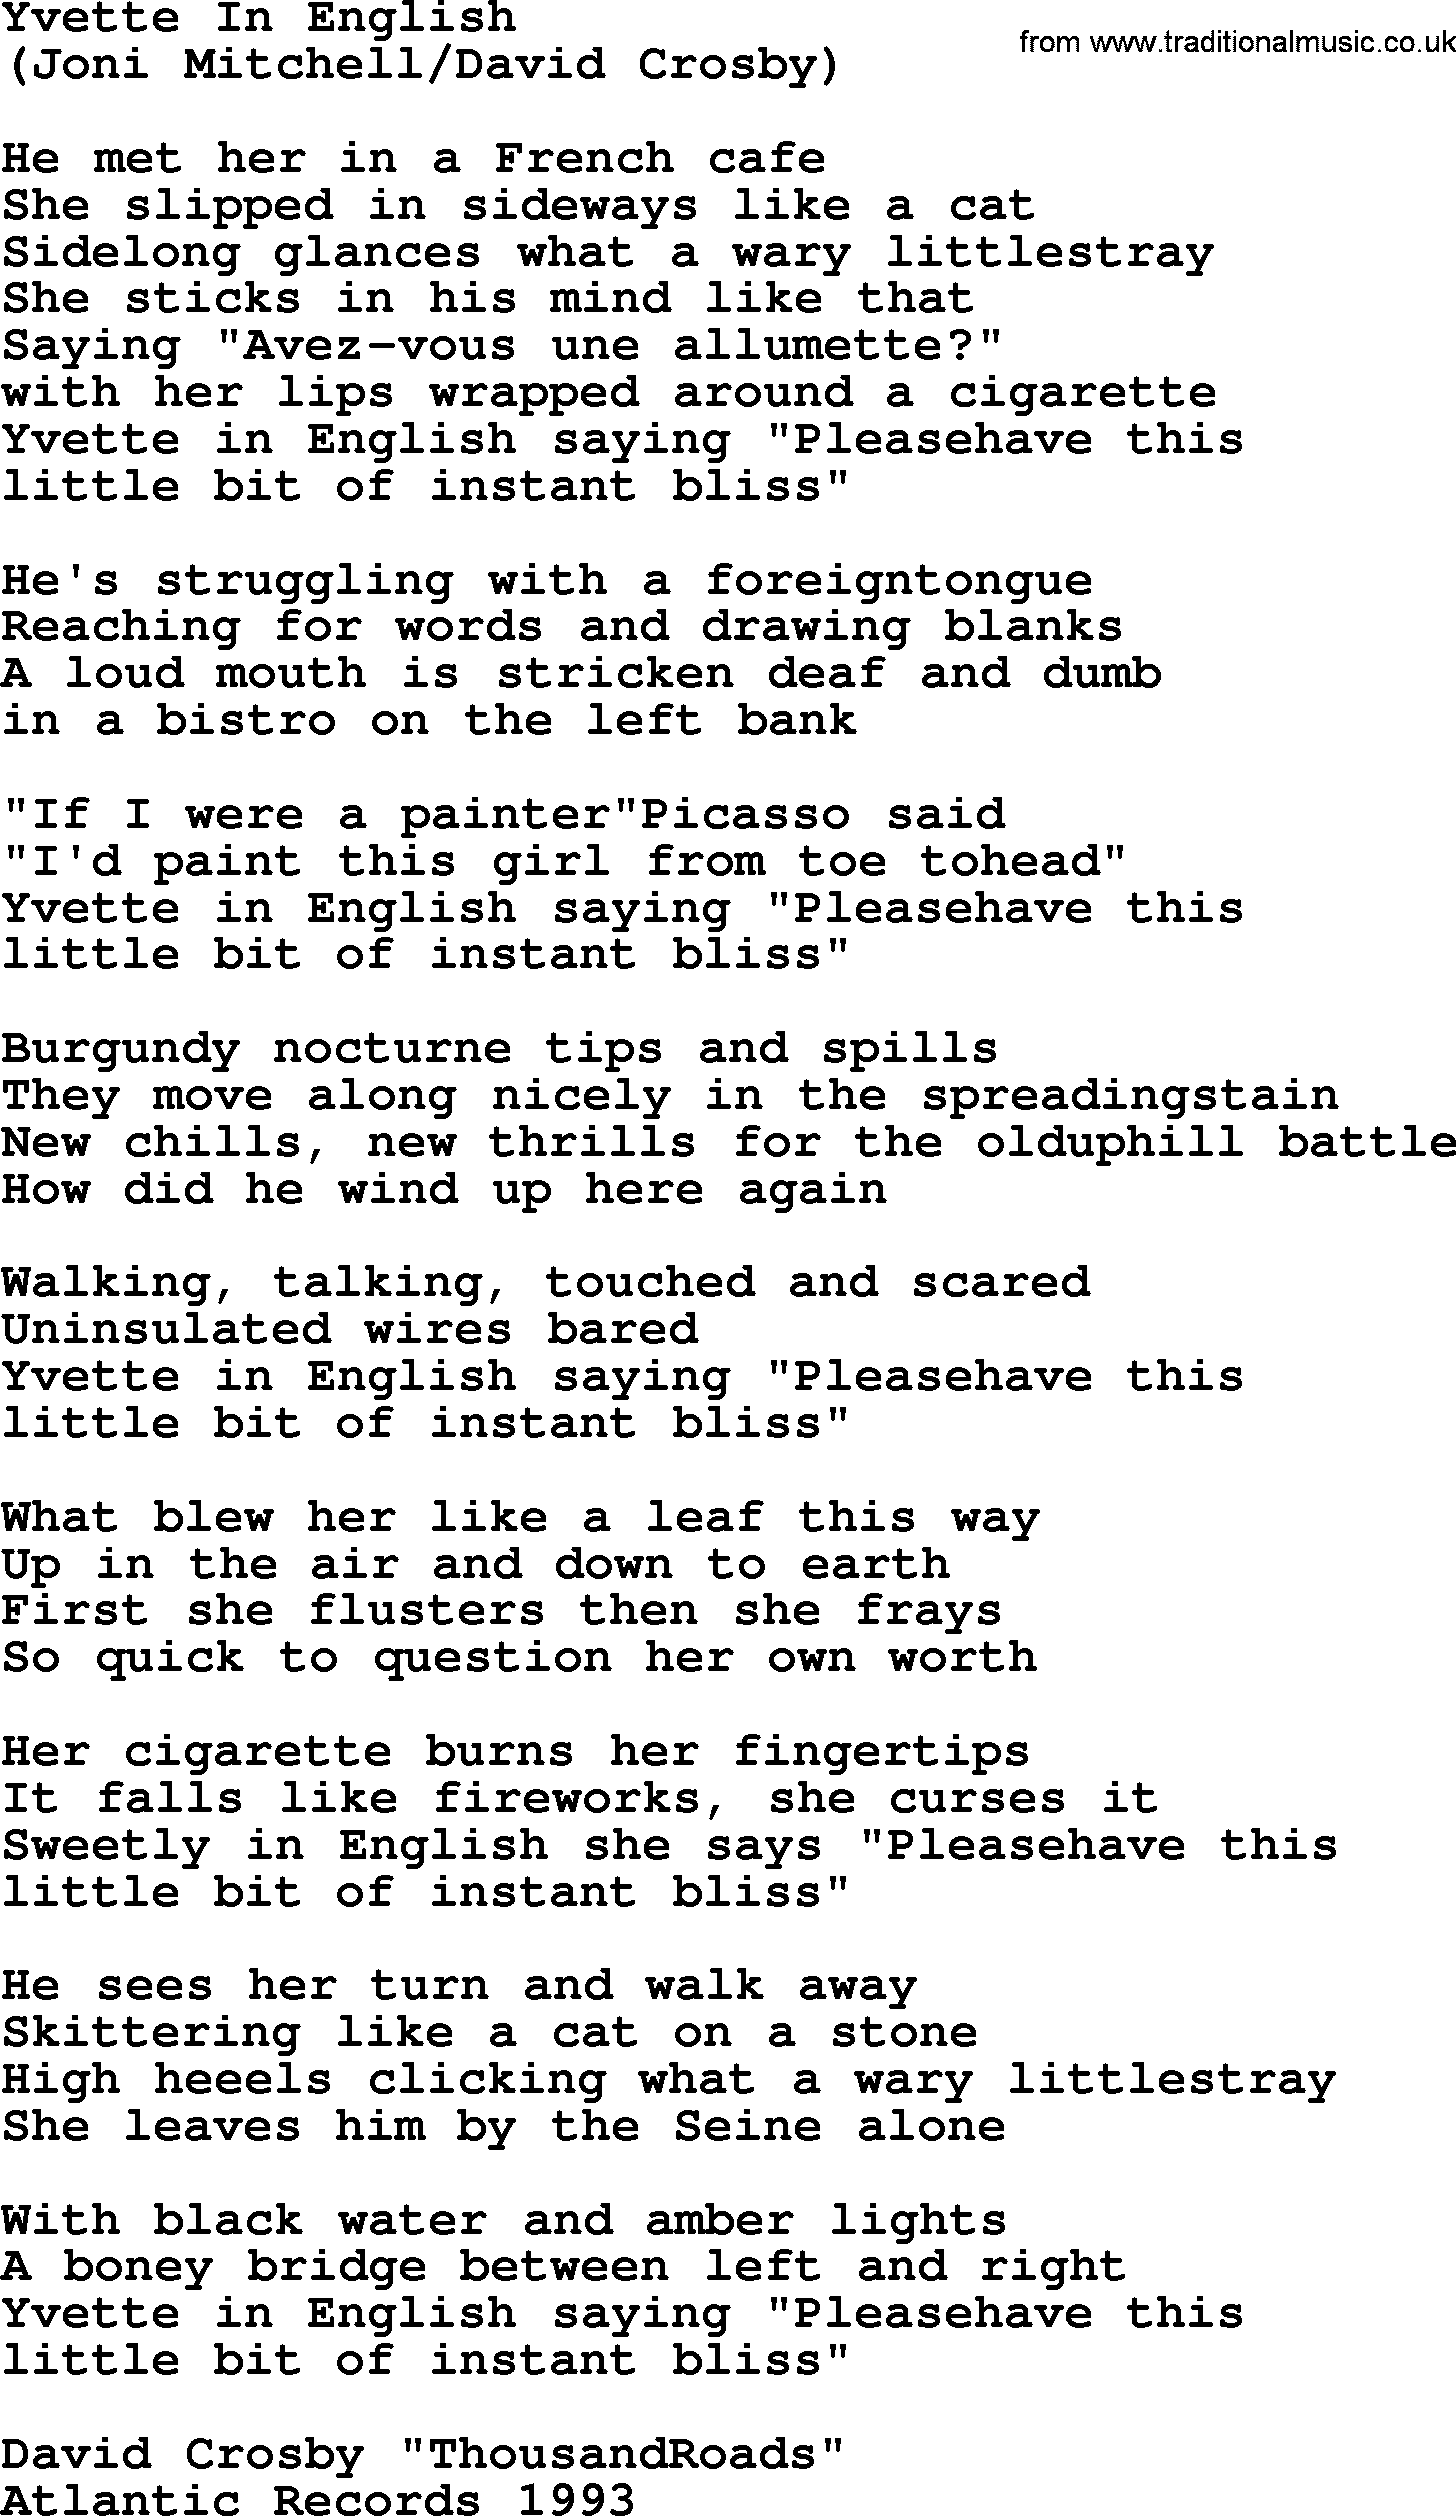 Yvette In English, by The Byrds - lyrics with pdf